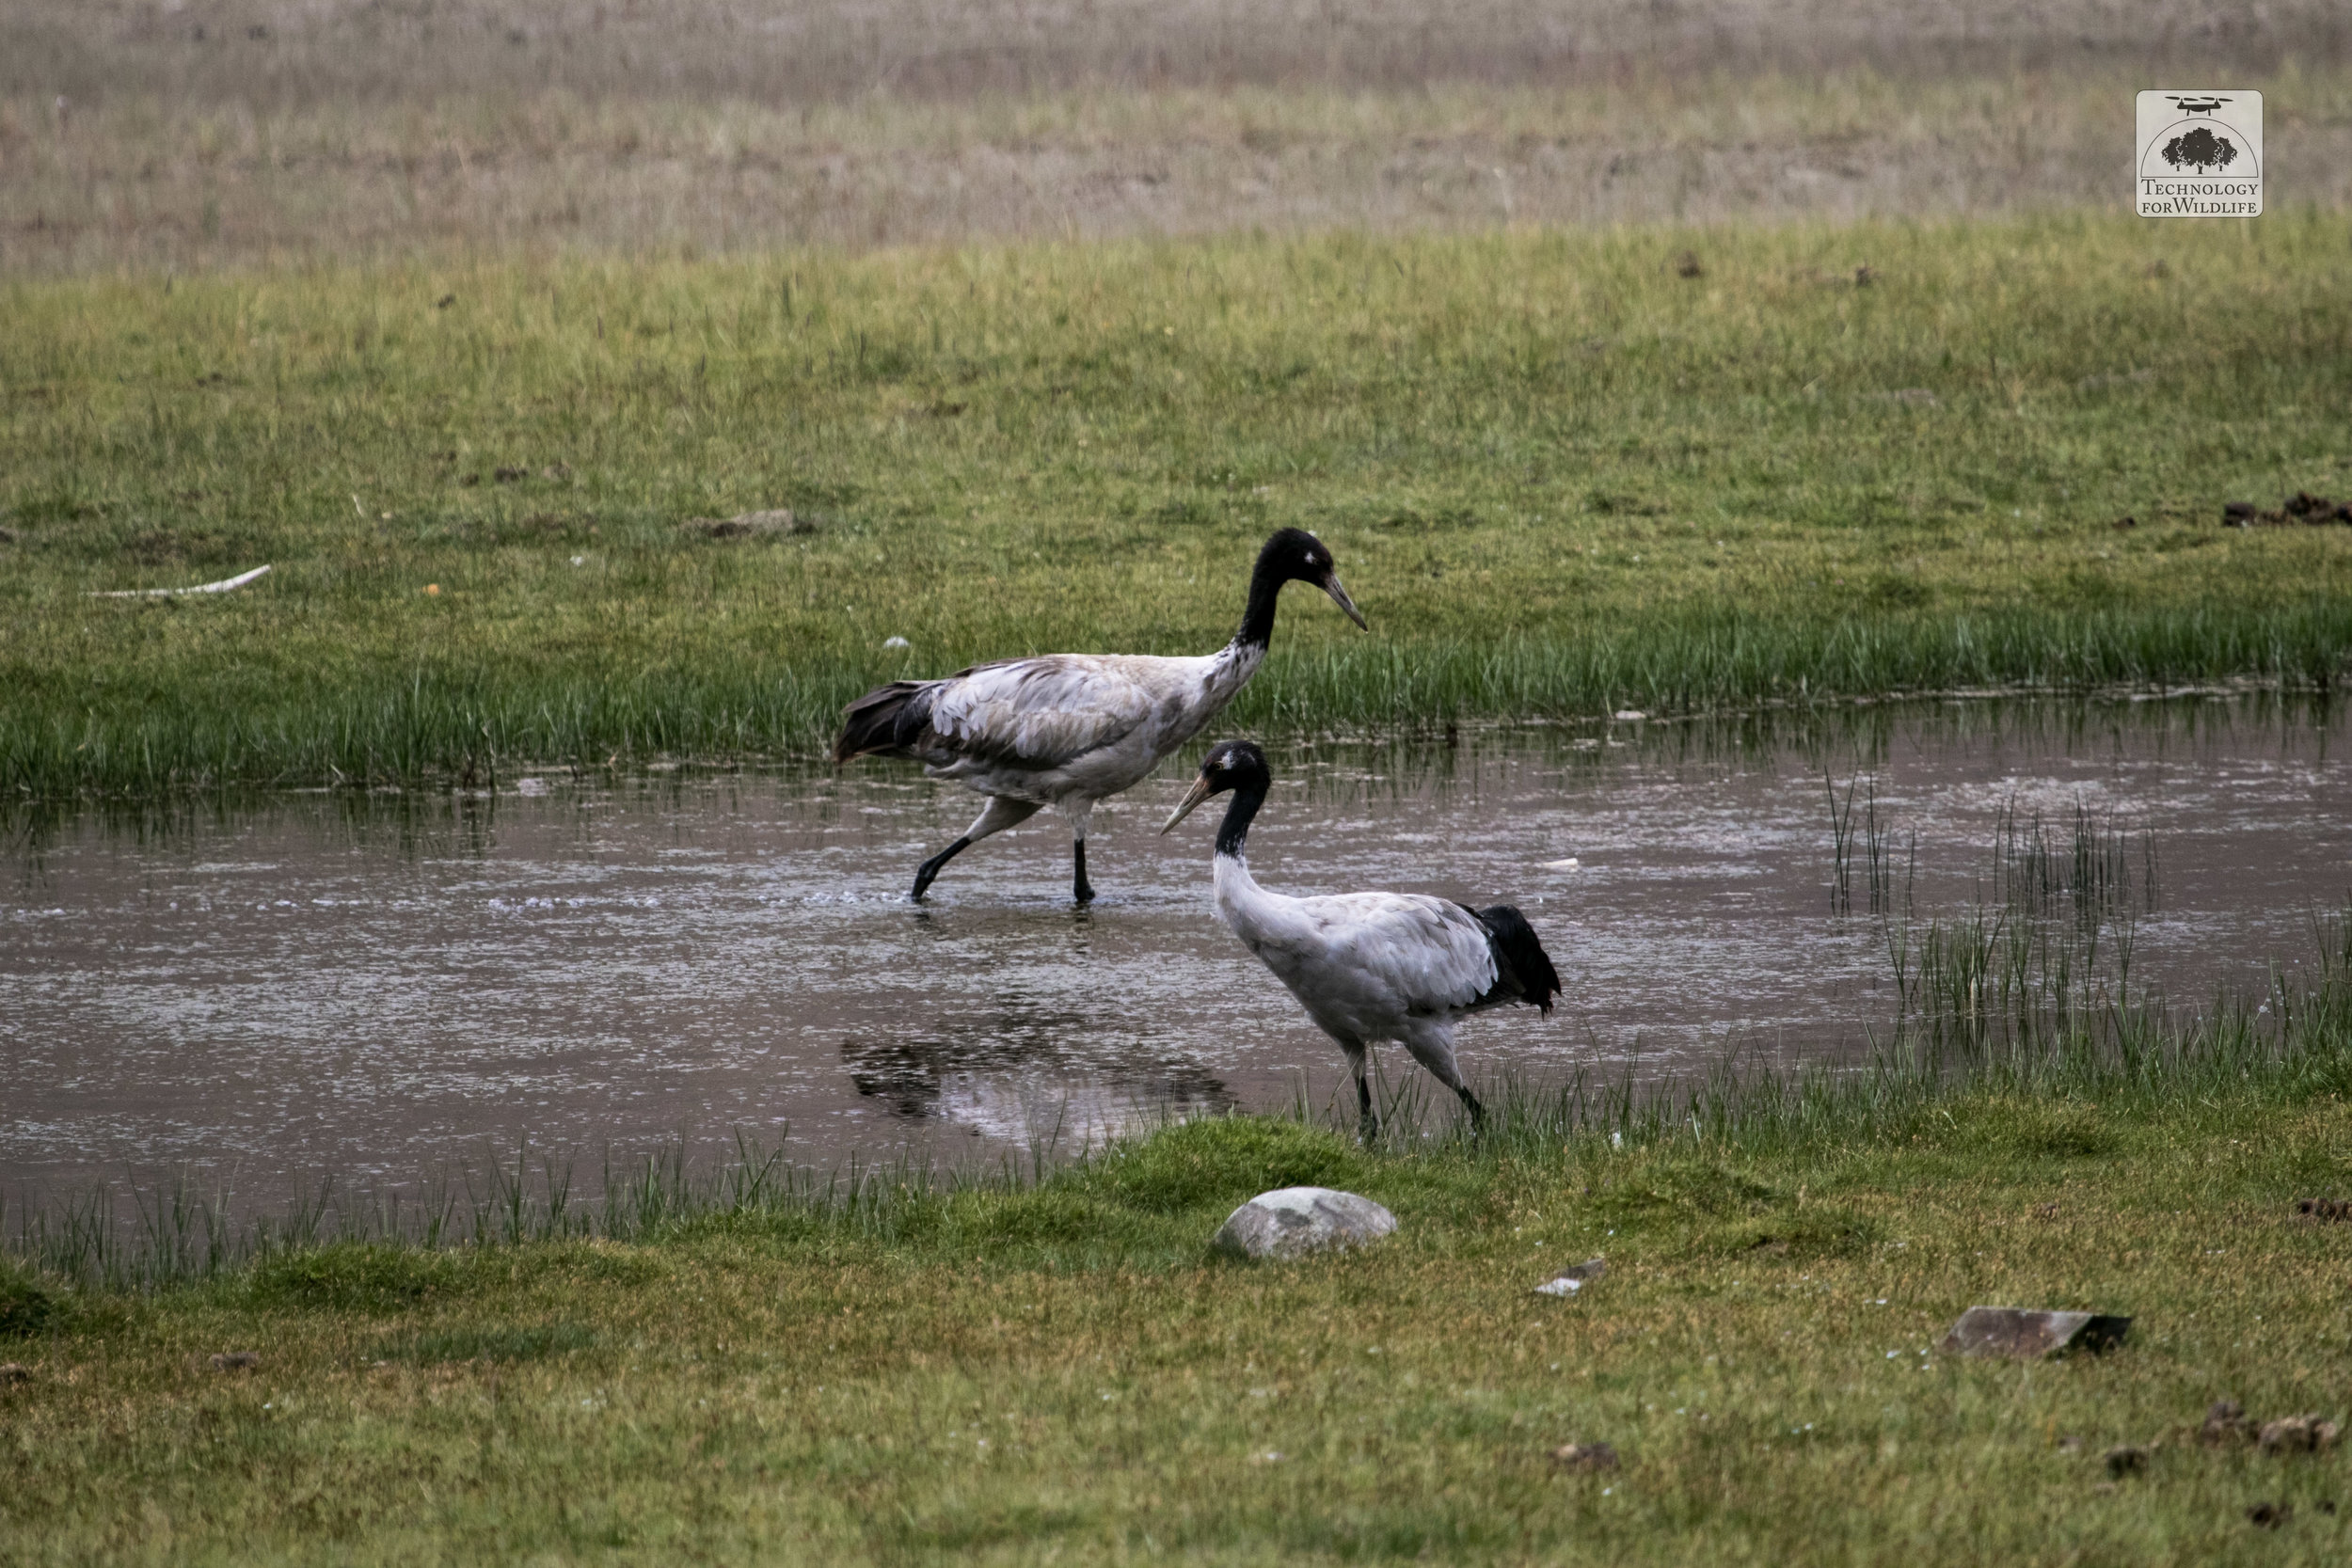 The black-necked crane ( Grus nigricollis ), revered in both Arunachal Pradesh and Ladakh. Photo: Shashank Srinivasan | 2017